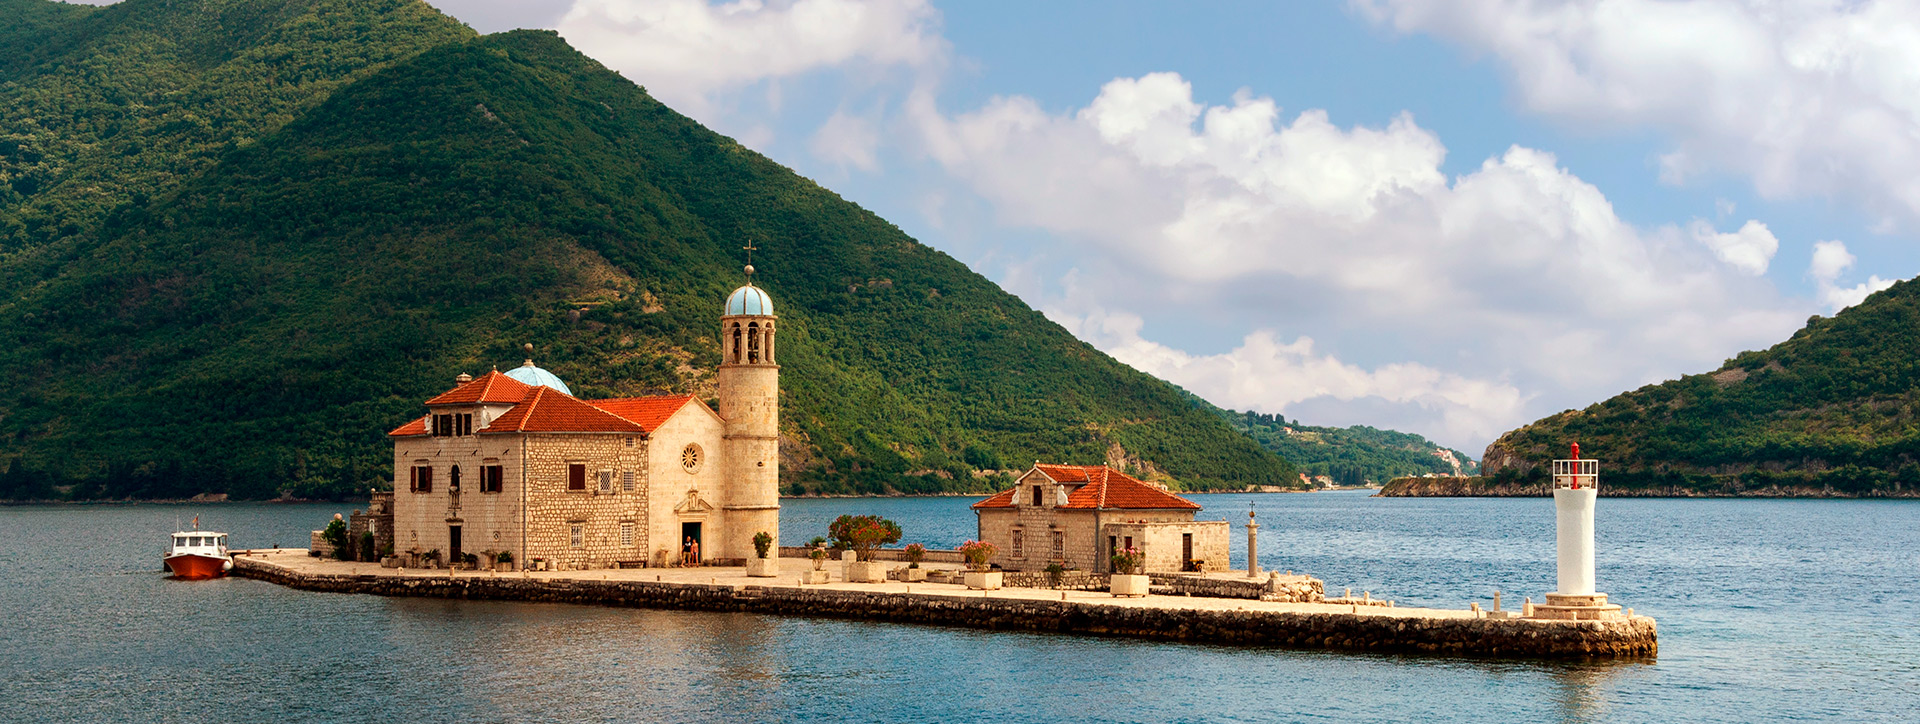 The island of our lady on the rocks, Kotor Bay, Montenegro